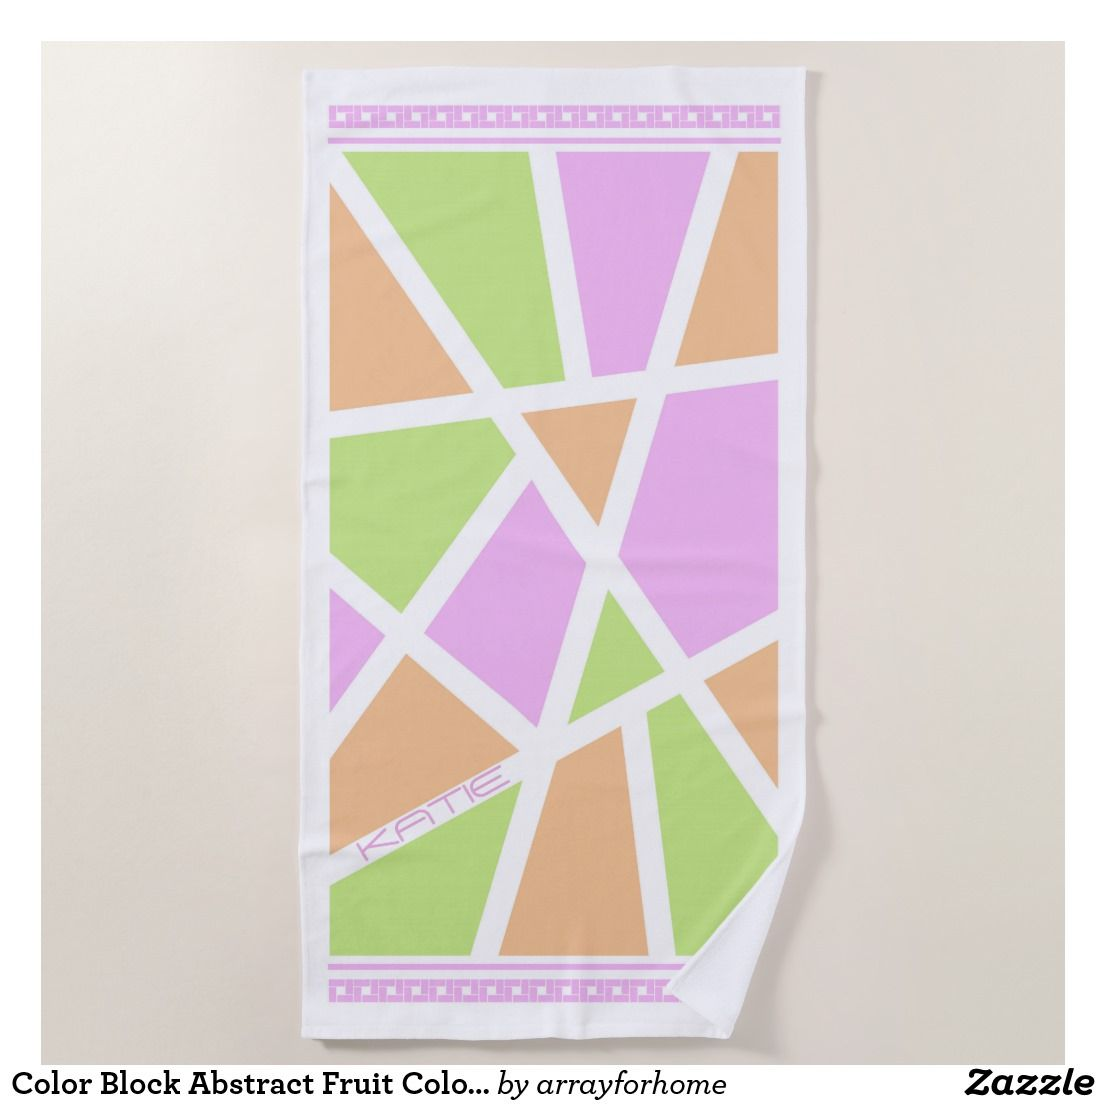 Color Block Abstract Fruit Colors  Beach Towel Summery colors of lime green, fresh orange and pink grapefruit in abstract color block shapes with geometric borders on a white background. Add your name to personalize using the provided template. Search ID410 to see other color options for this design.